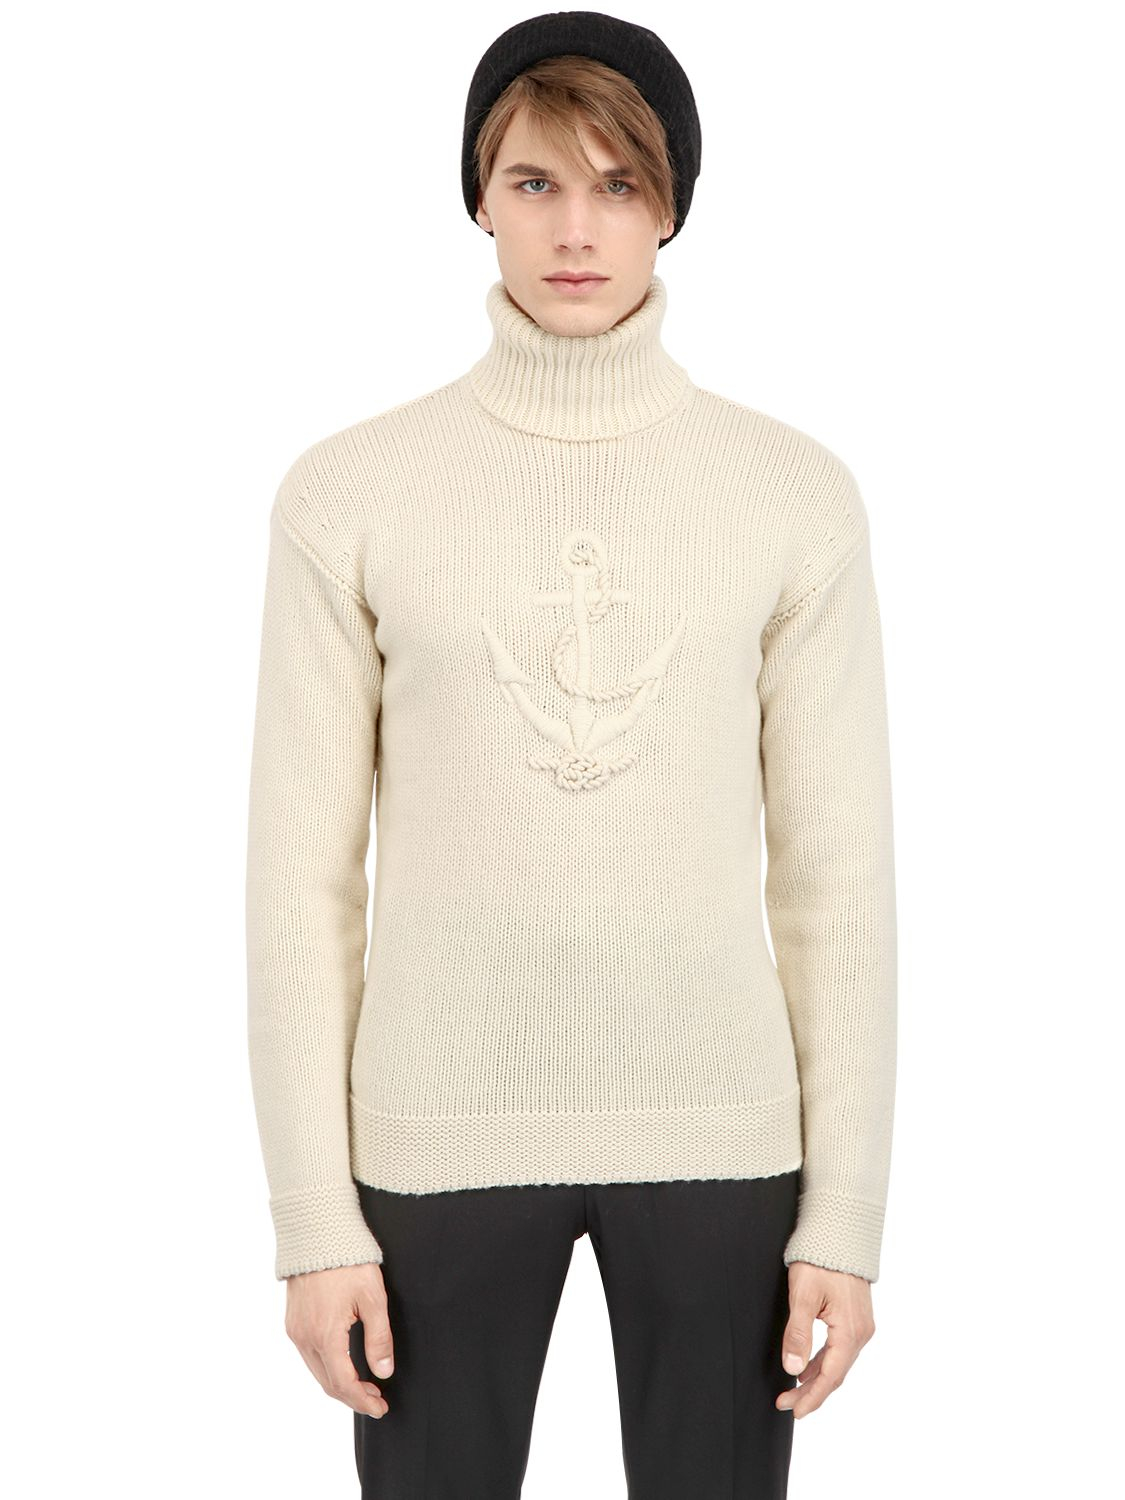 This boys' white long-sleeve turtleneck shirt is crafted in pure cotton. Looks good as a one-piece or an undershirt. metrdisk.cf: $